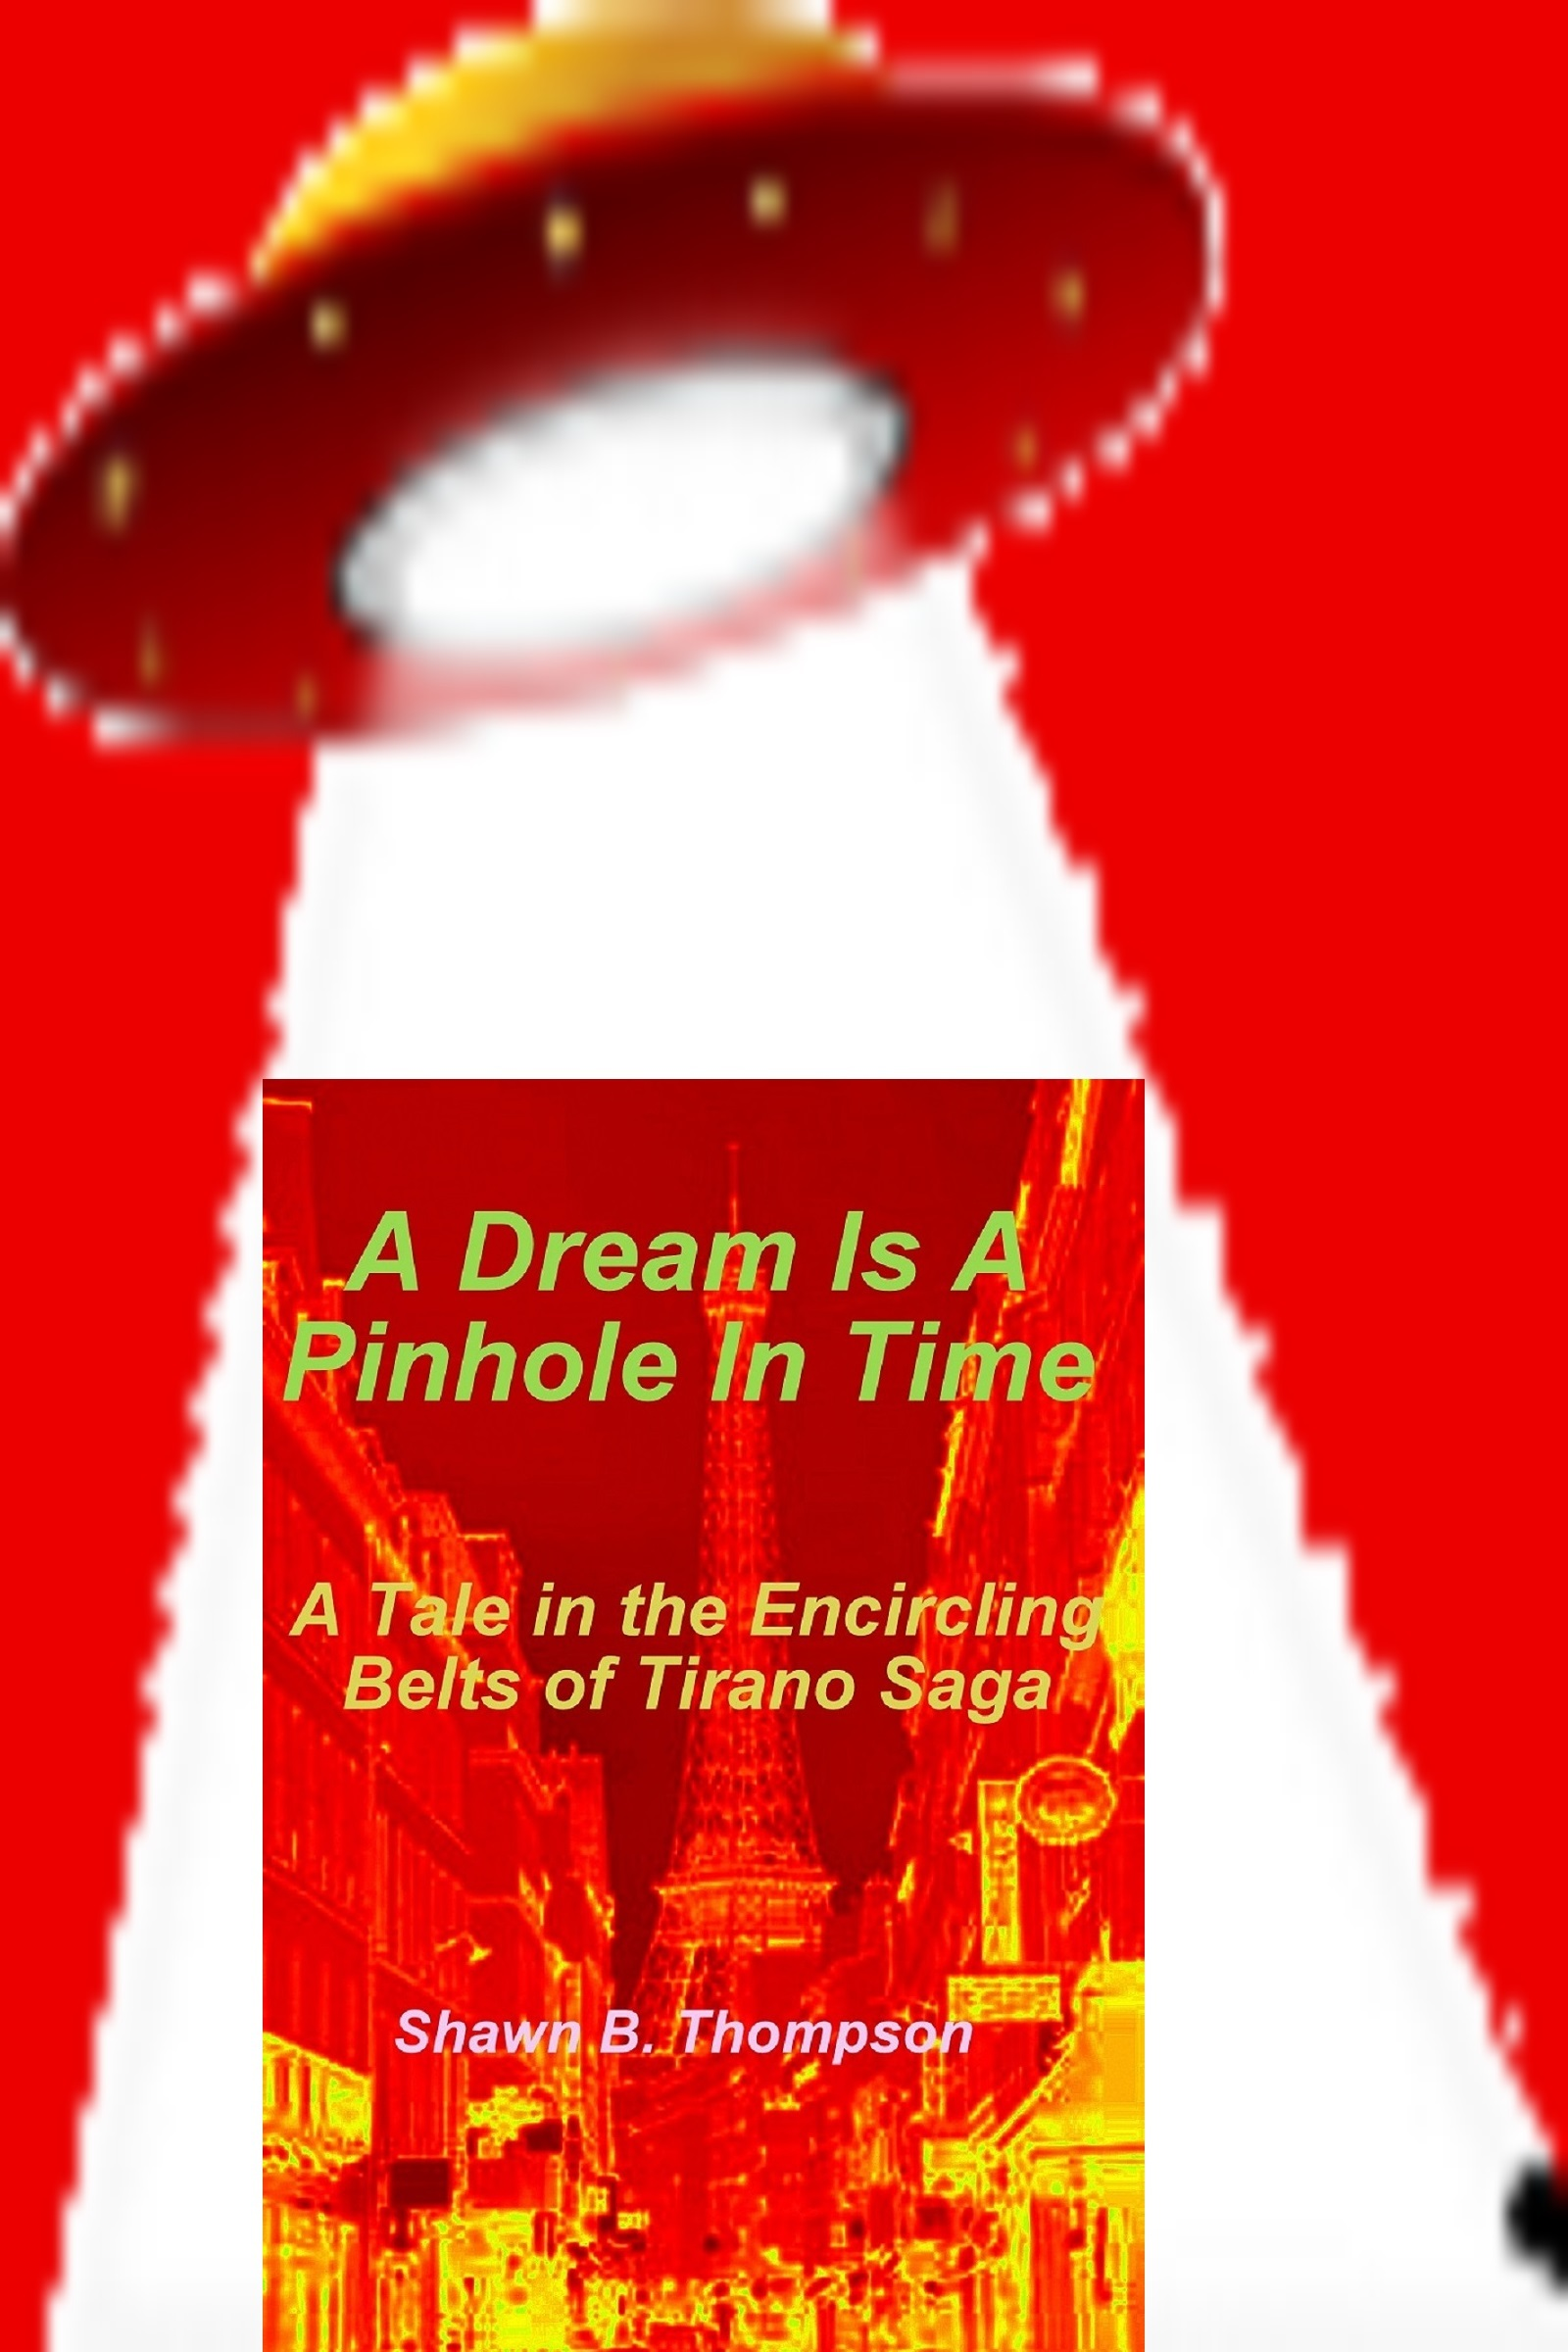 A Dream Is A Pinhole In Time